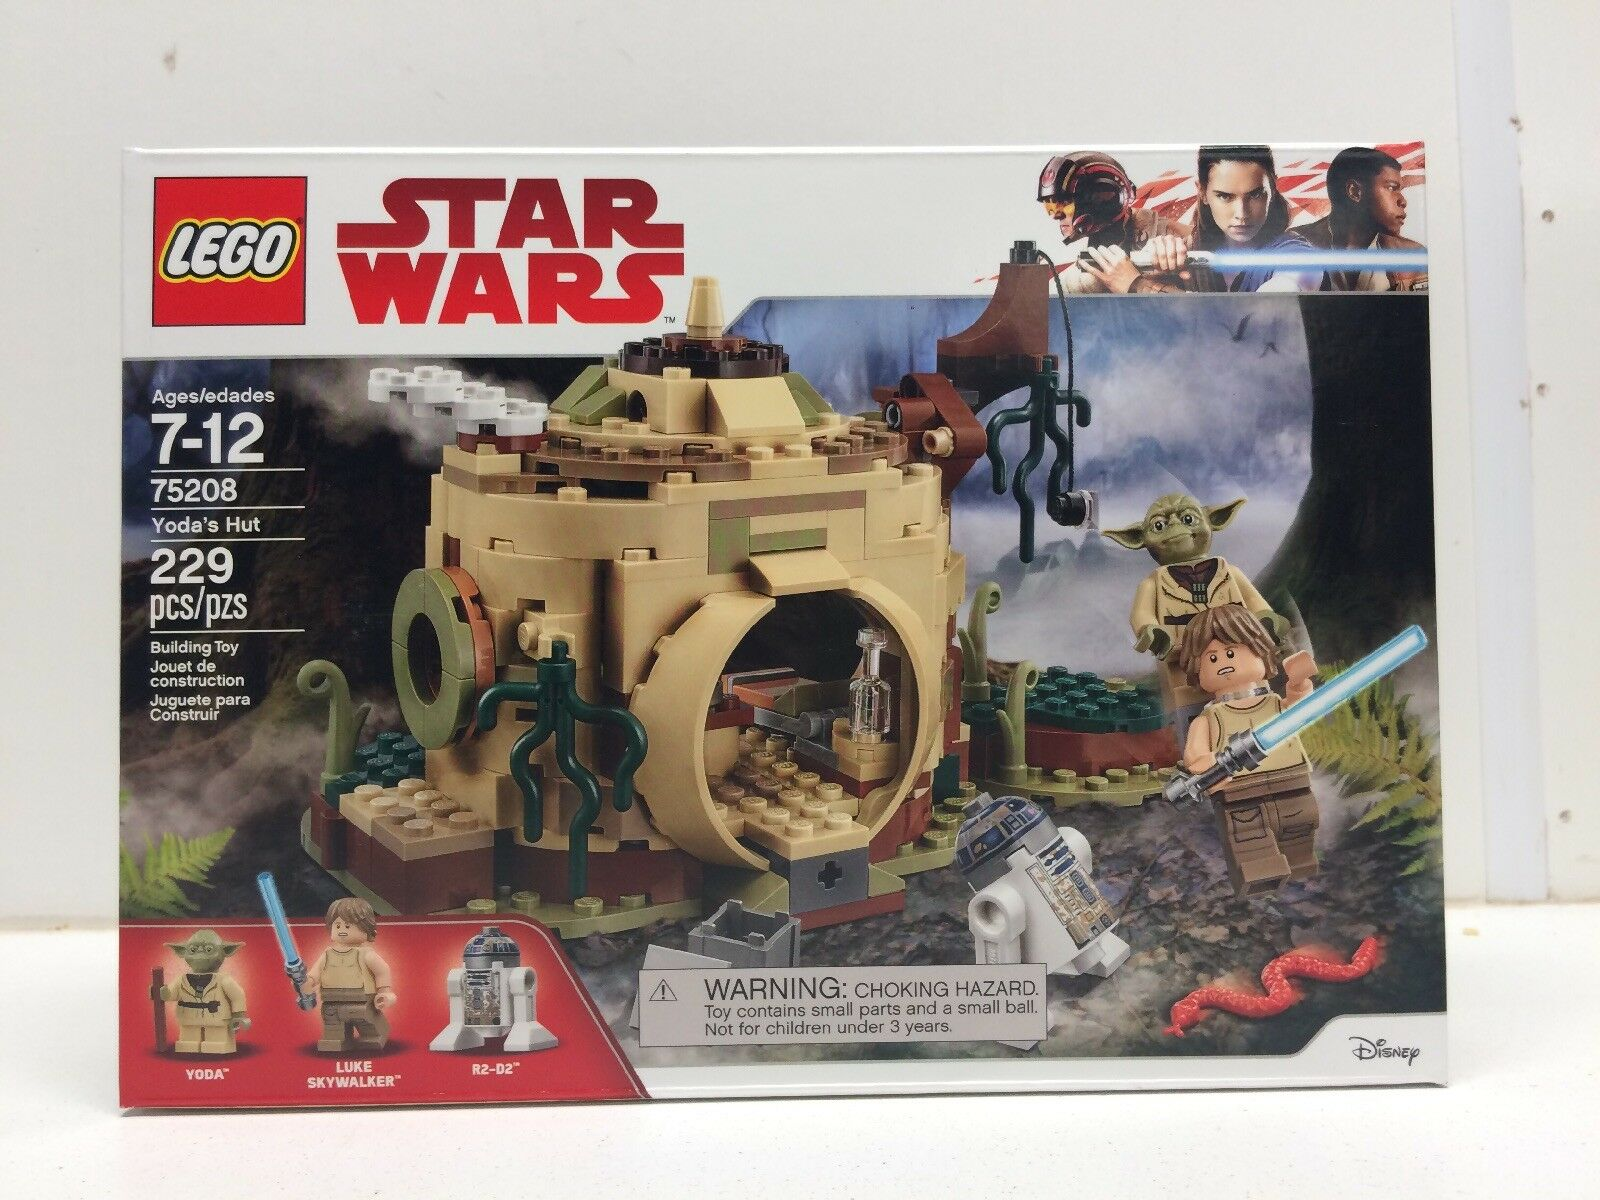 NEW NIB LEGO Star Wars  75208 Yodas Hut  NISB Factory Sealed